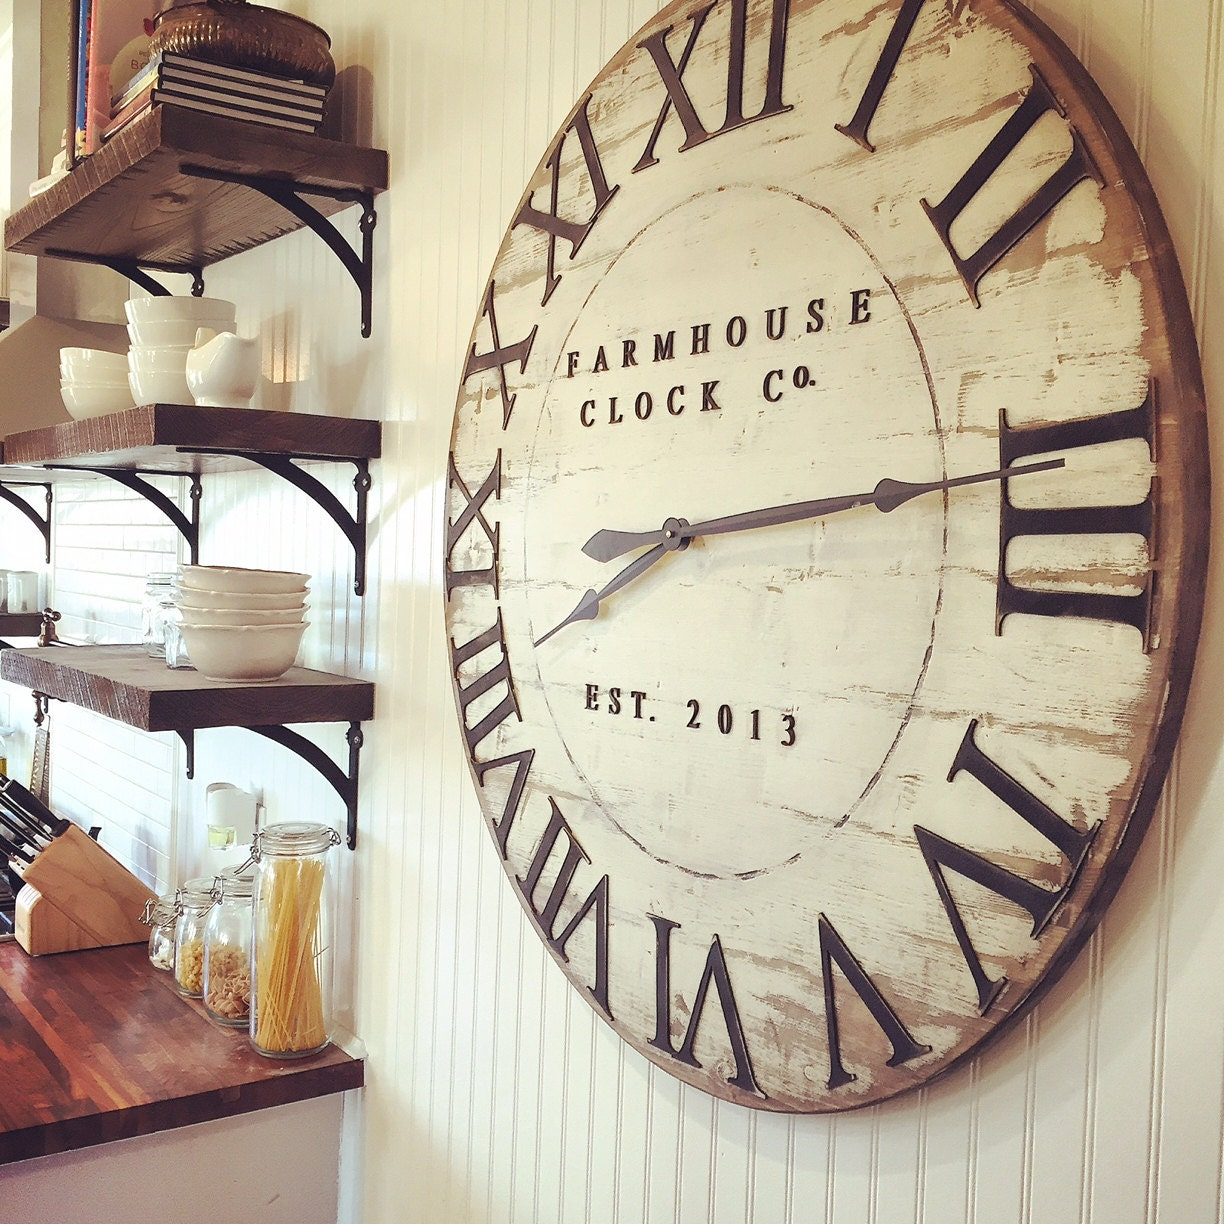 Farmhouse clock co distressed large round wooden wall clock request a custom order and have something made just for you amipublicfo Image collections